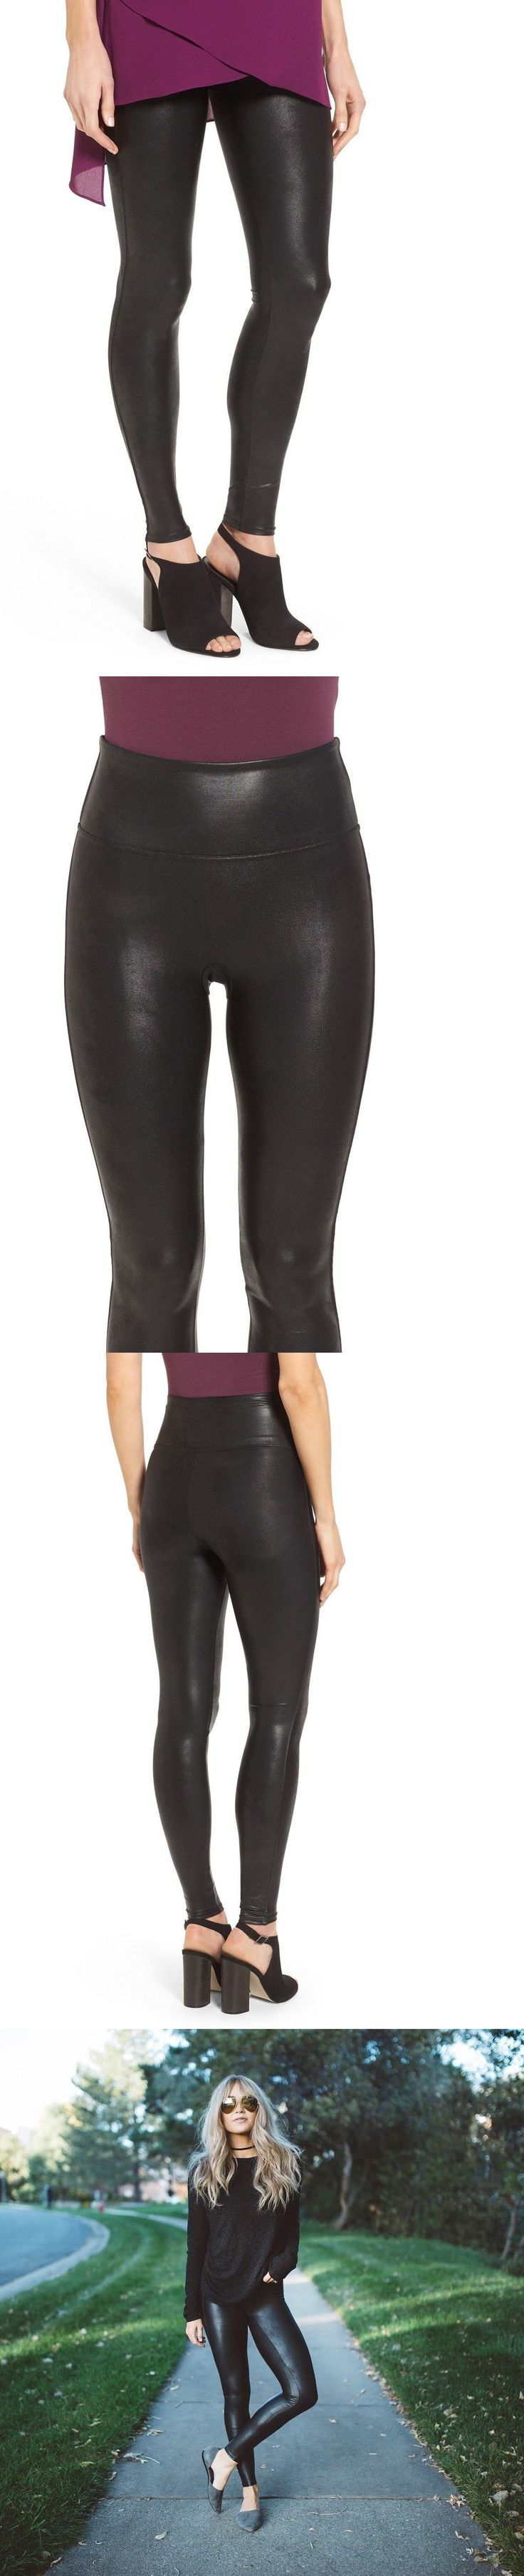 Women Leggings: New Spanx Women S Black Control Top Faux Leather Leggings, Size Medium -> BUY IT NOW ONLY: $60 on eBay!